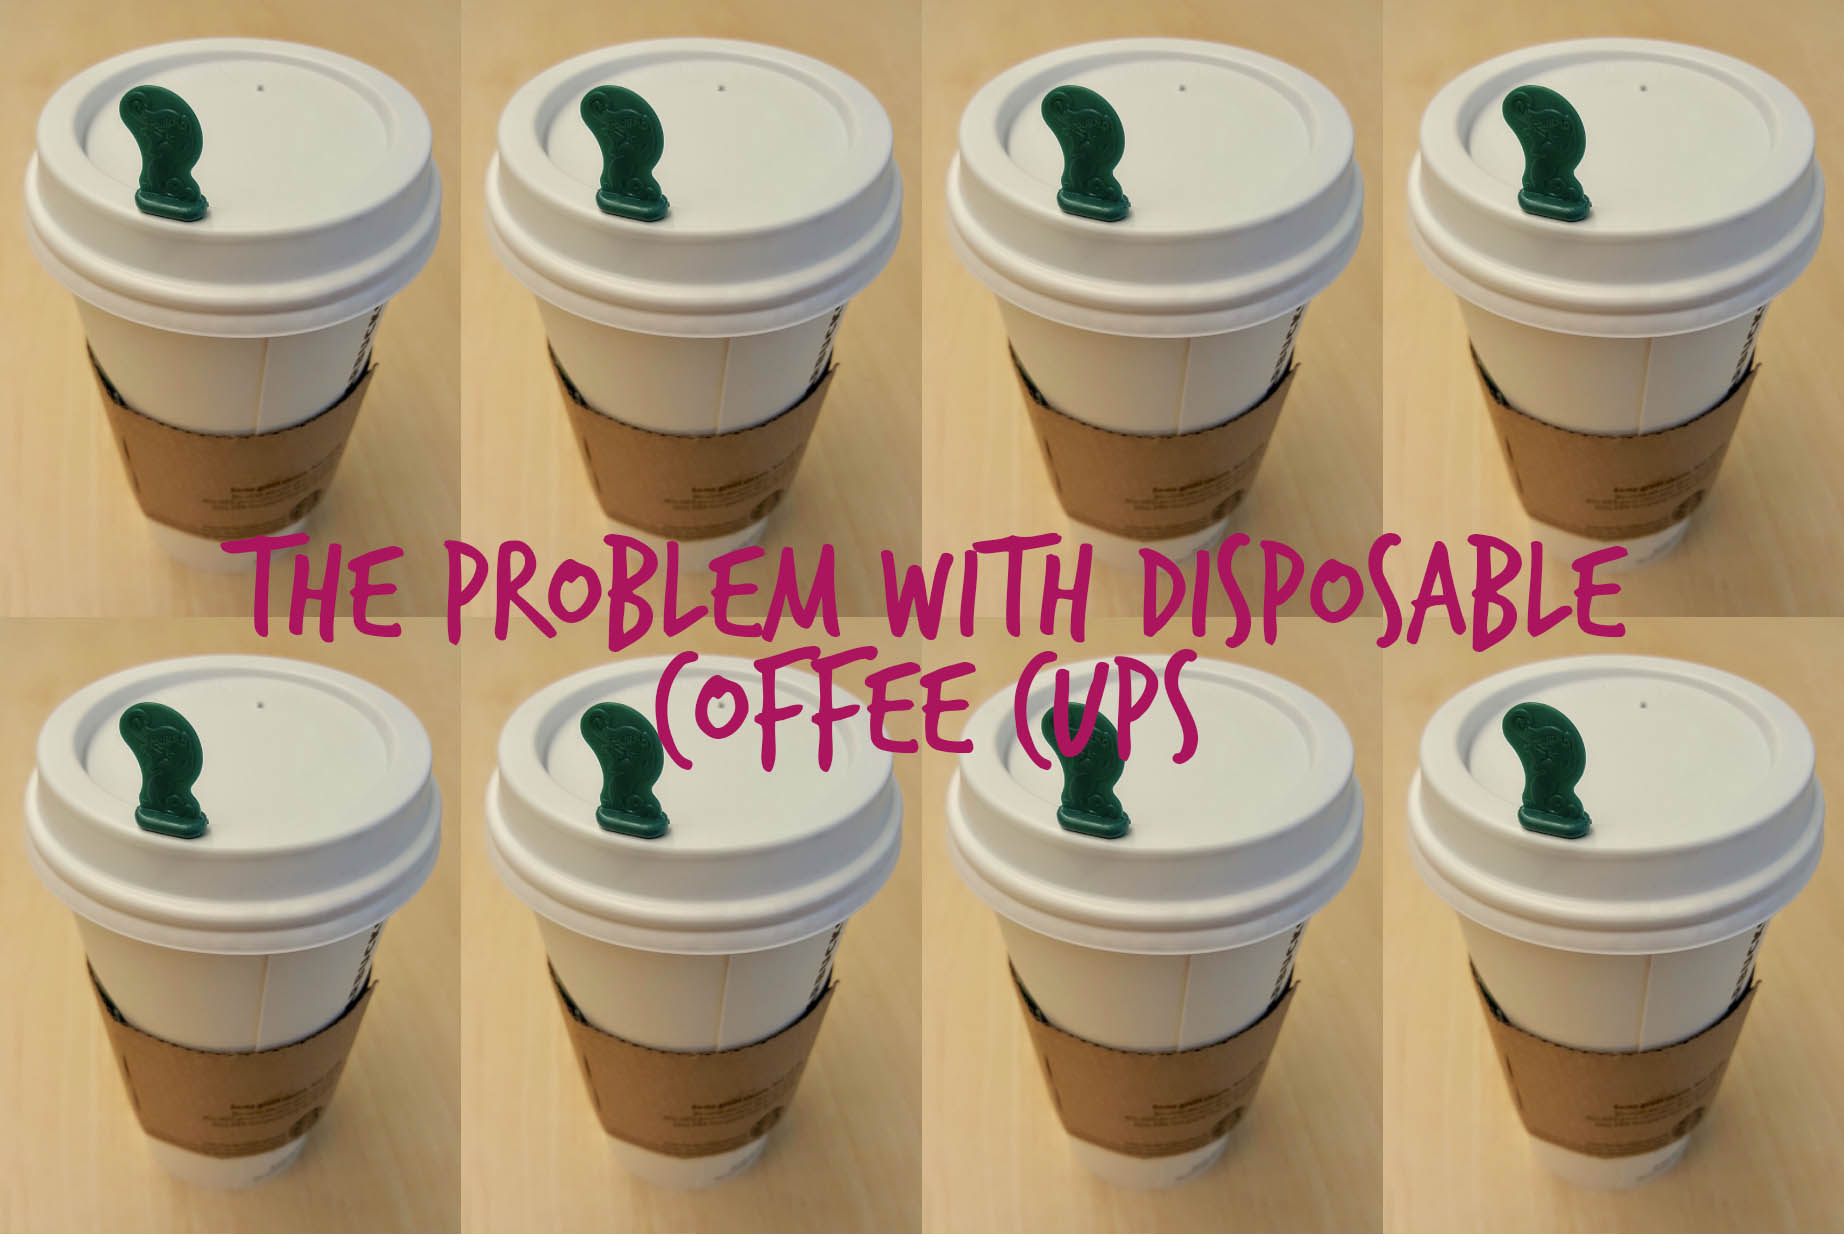 Disposable coffee cups: how big a problem are they?